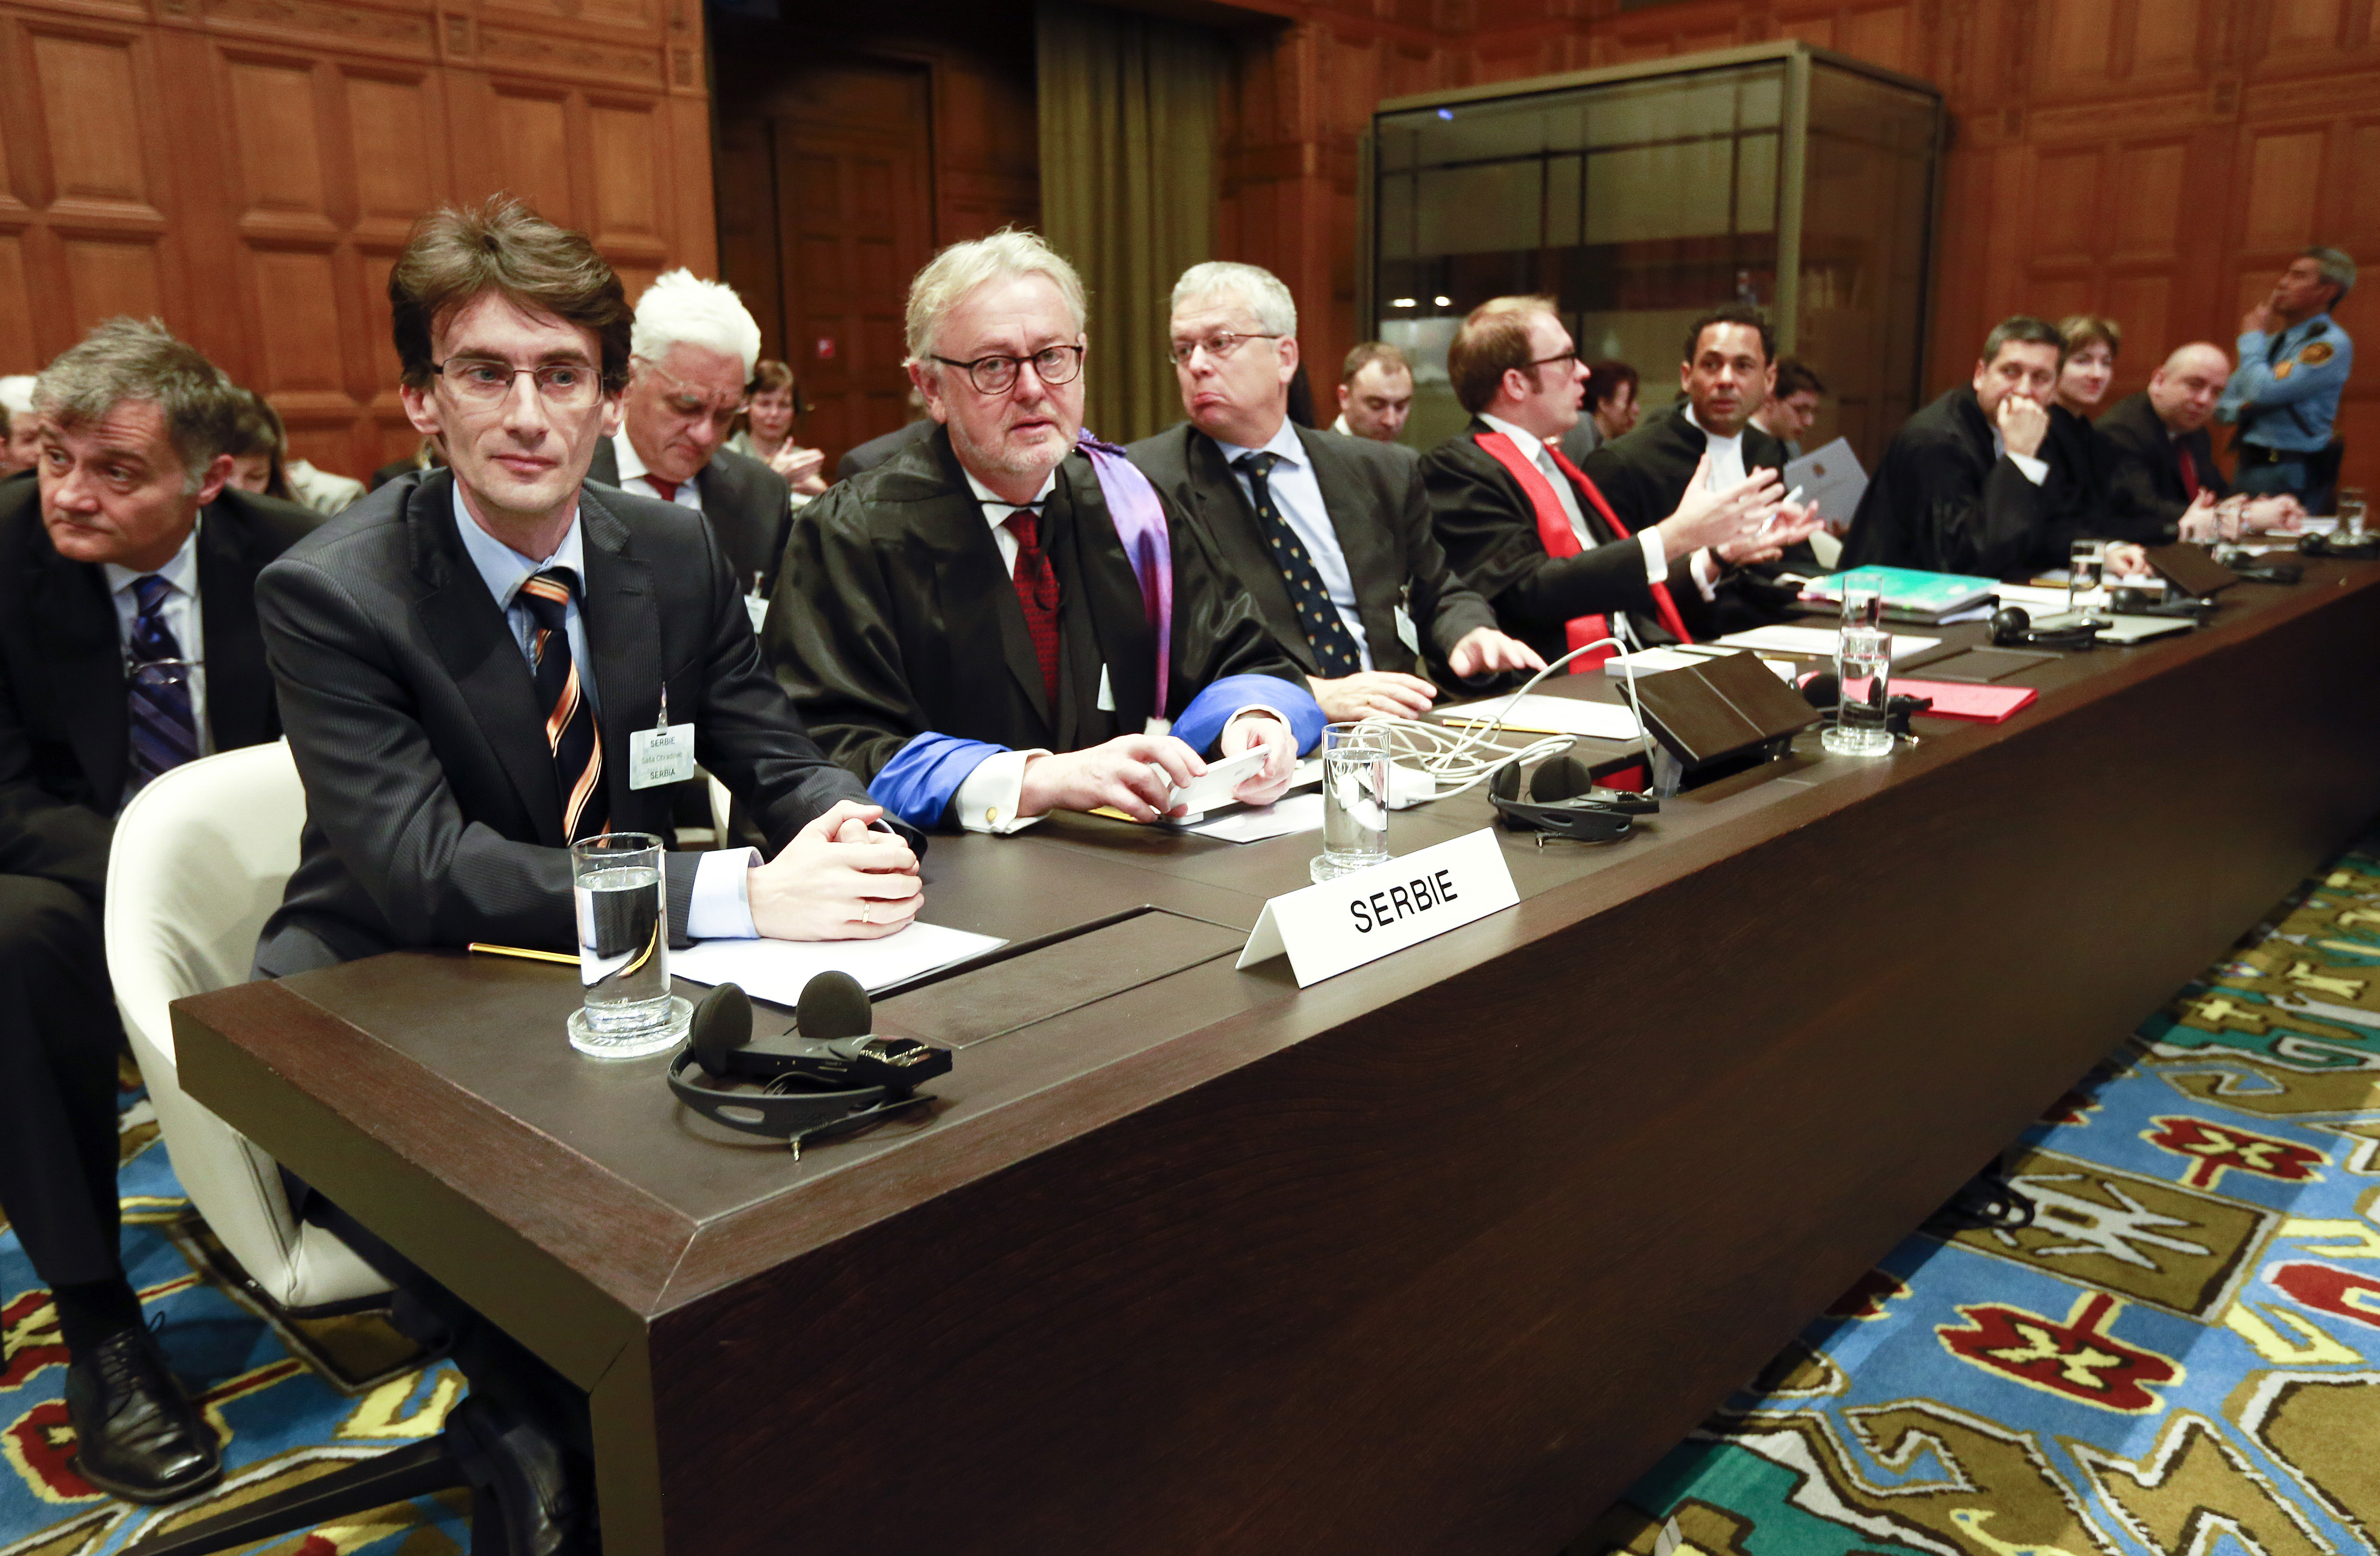 Members of the Serbian delegation, from left: Sasa Orbadovic, William Schabas, Andreas Zimmermann, Christian Tams and Wayne Jordash await the start of public hearings at the International Court of Justice (ICJ) in The Hague,  Netherlands, Monday, March 3, 2014.